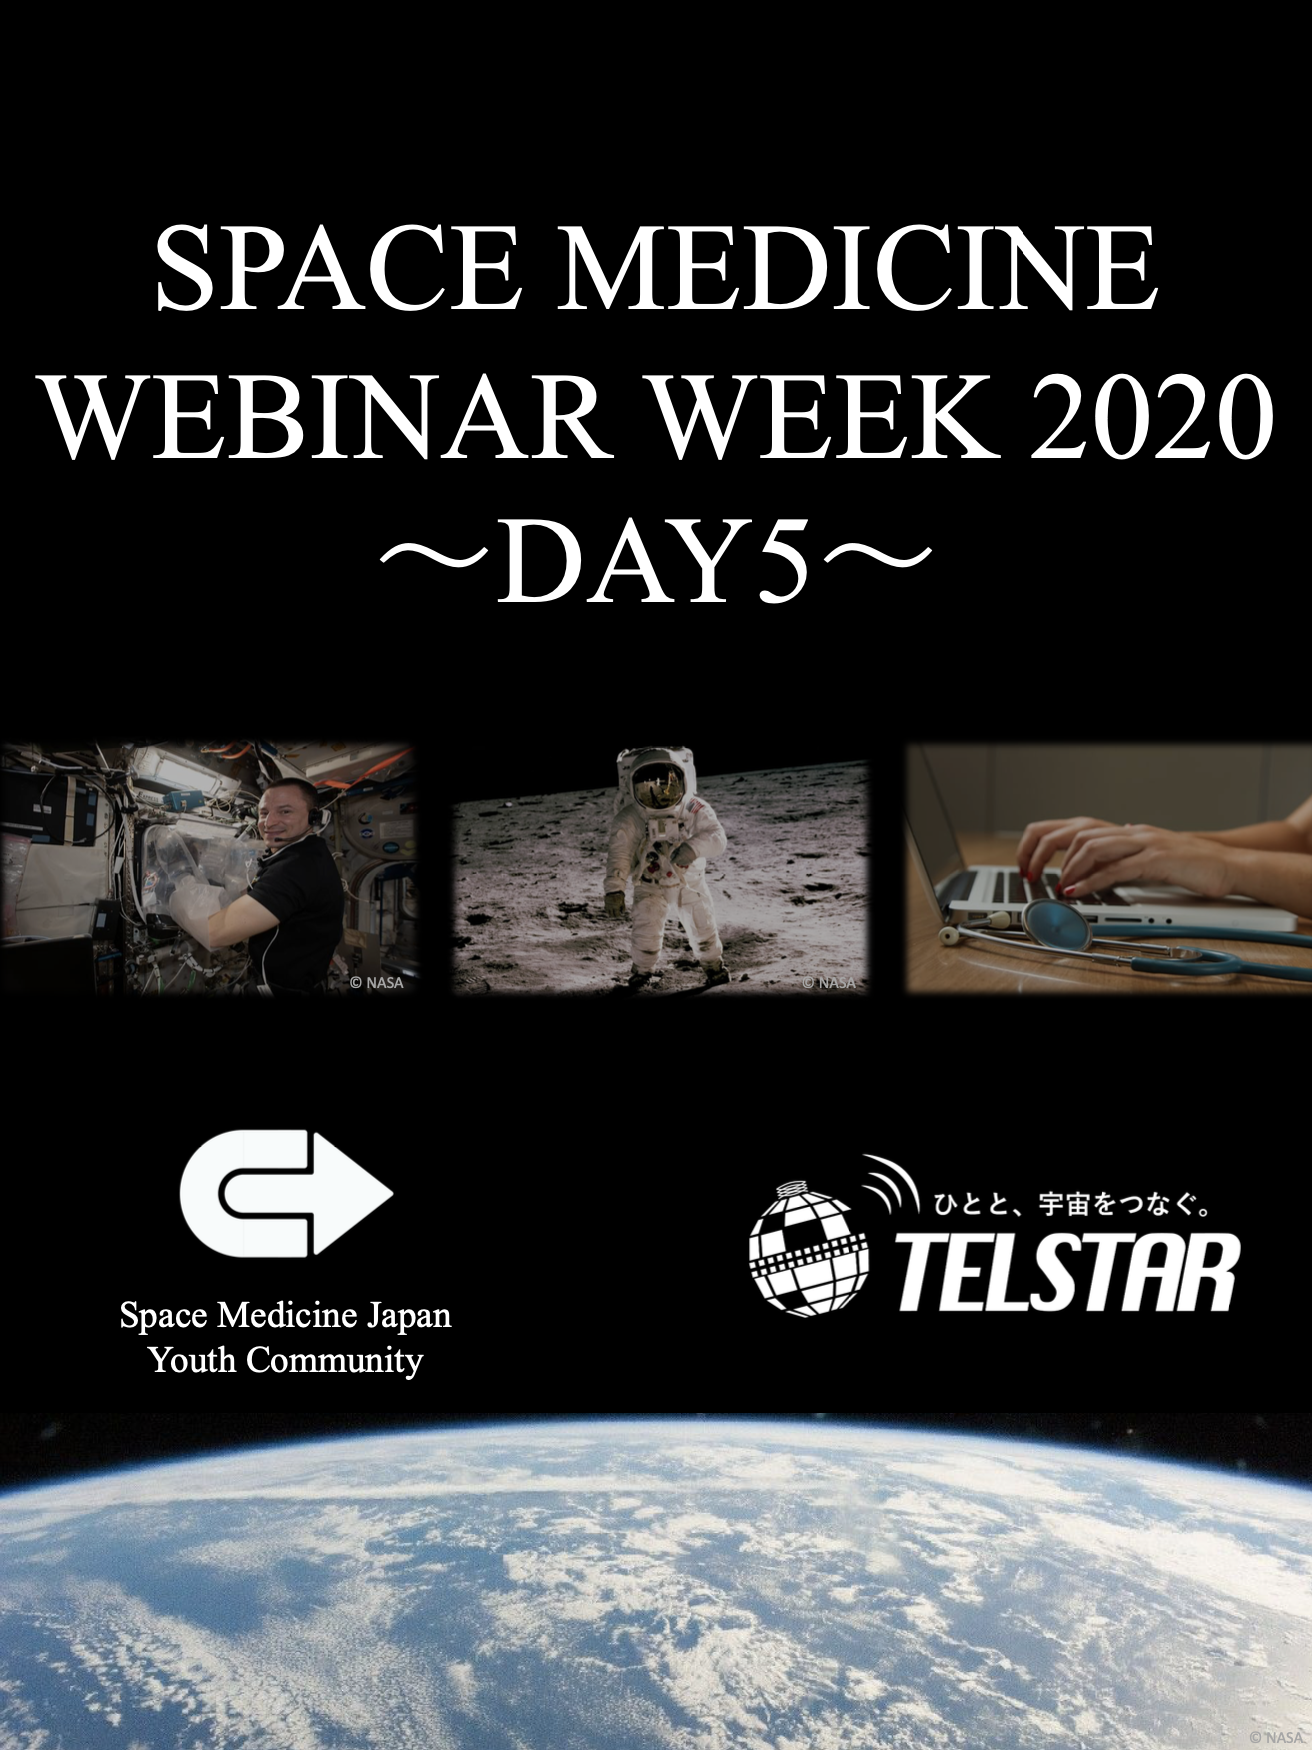 「医」を「宇宙」で。 〜SPACE MEDICINE WEBINAR WEEK 2020 DAY5 〜